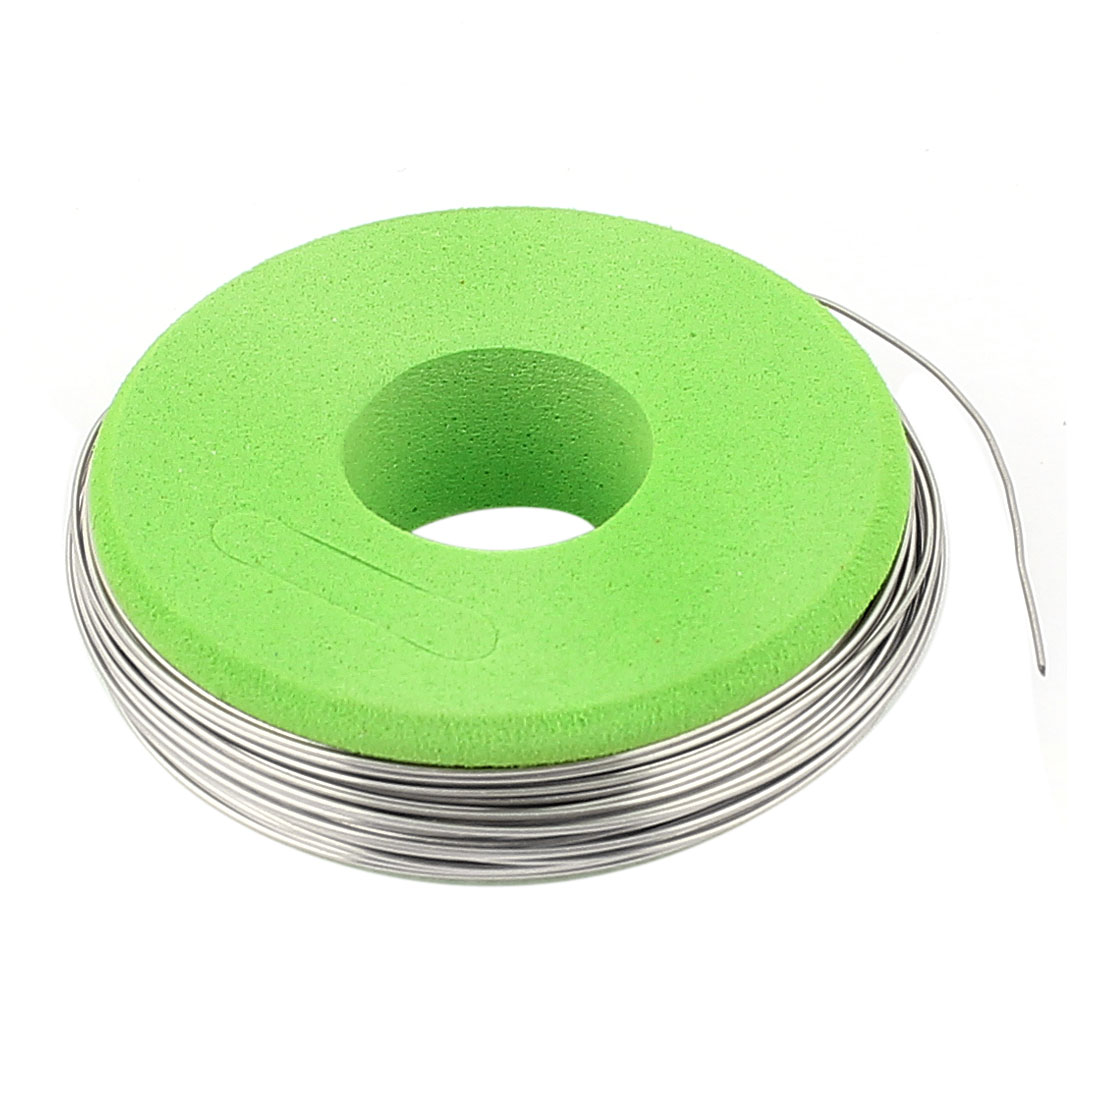 Nichrome 80 Round Wire 0.5mm 24Gauge AWG 24.6ft Roll 5.551Ohm/m Resistance